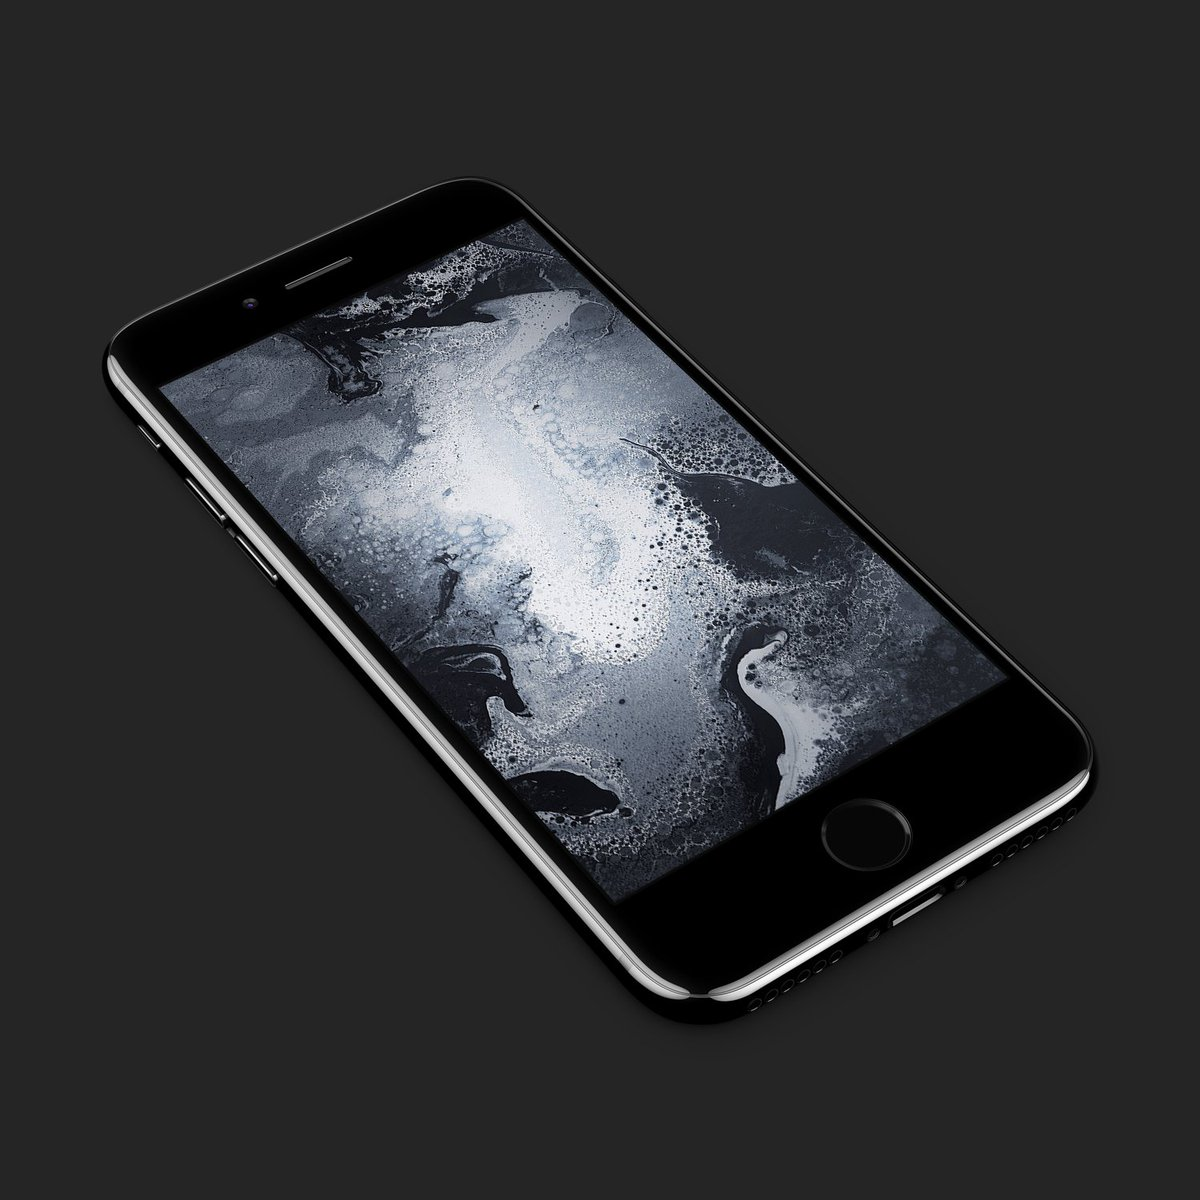 Ar7 On Twitter Black Earth Wallpaper For All Iphone Download Https T Co 7rptwriwmv Prod By Ar72014